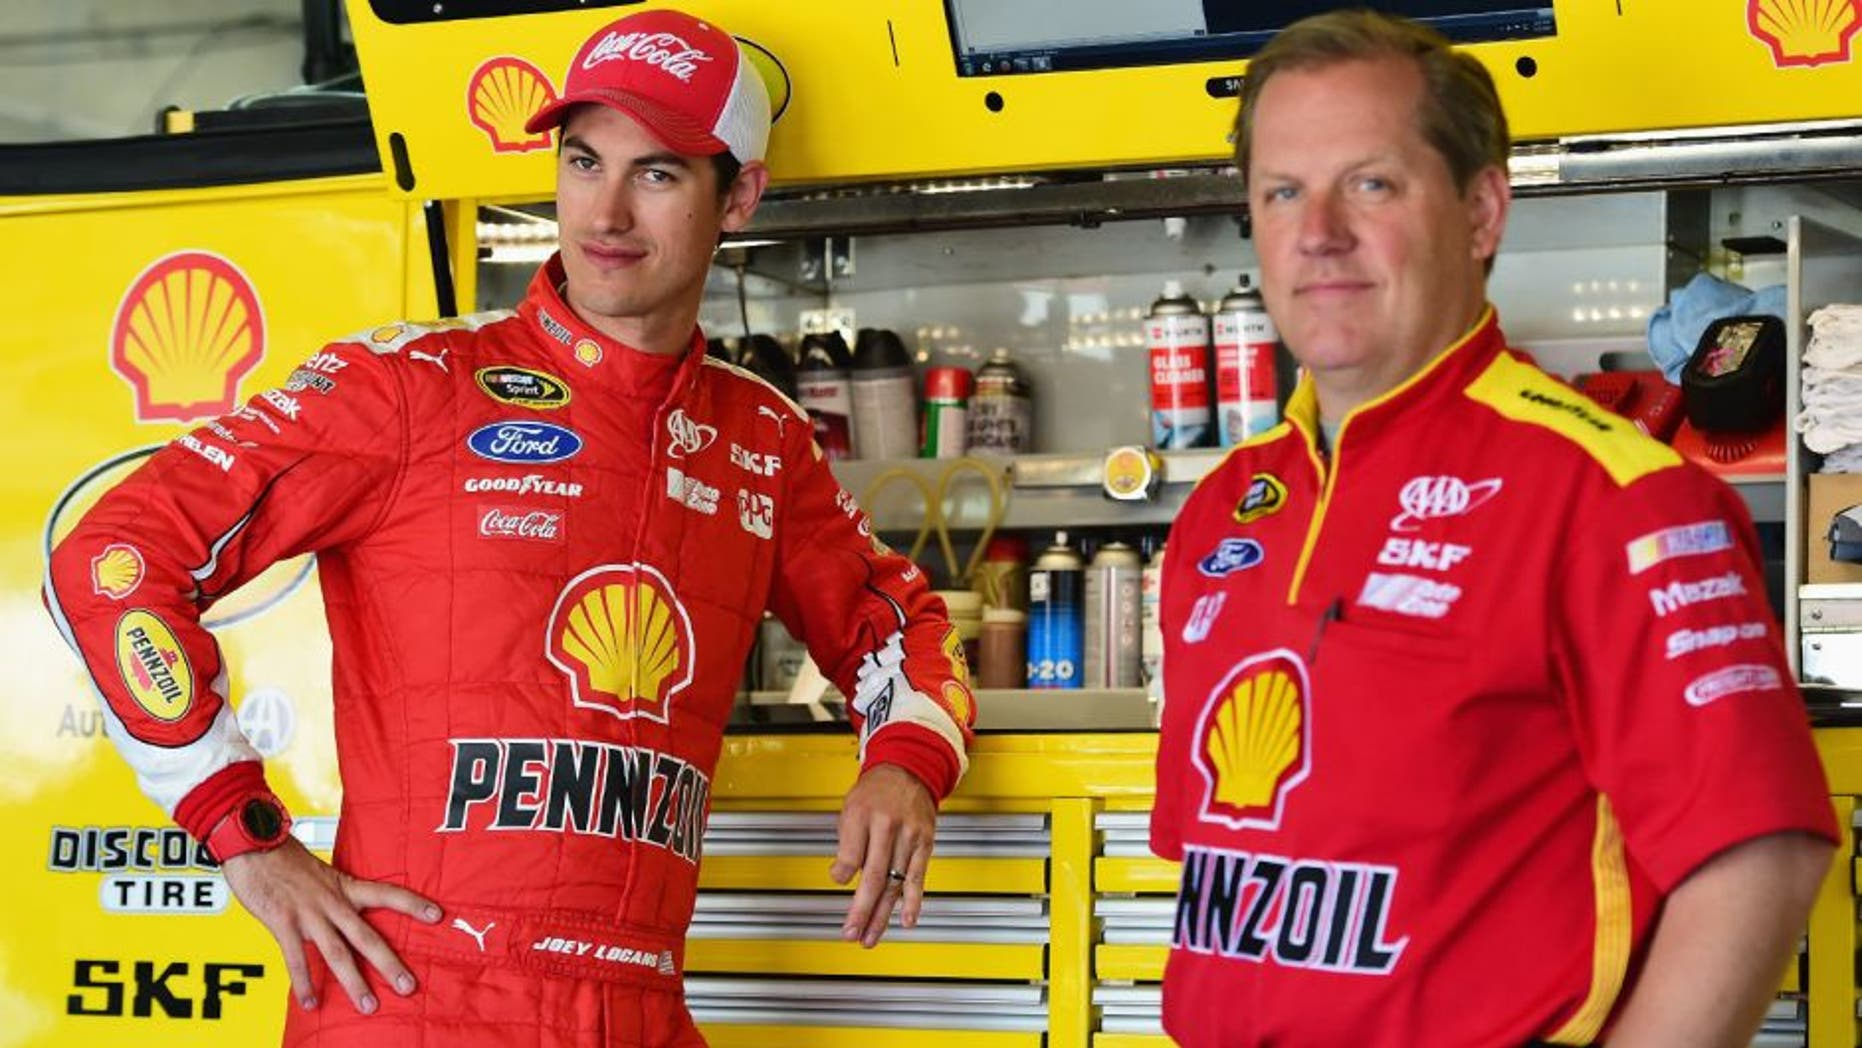 CHARLOTTE, NC - MAY 23: Joey Logano, driver of the #22 Shell Pennzoil Ford, stands in the garage area with his crew chief Todd Gordon during practice for the NASCAR Sprint Cup Series Coca-Cola 600 at Charlotte Motor Speedway on May 23, 2015 in Charlotte, North Carolina. (Photo by Jared C. Tilton/Getty Images)